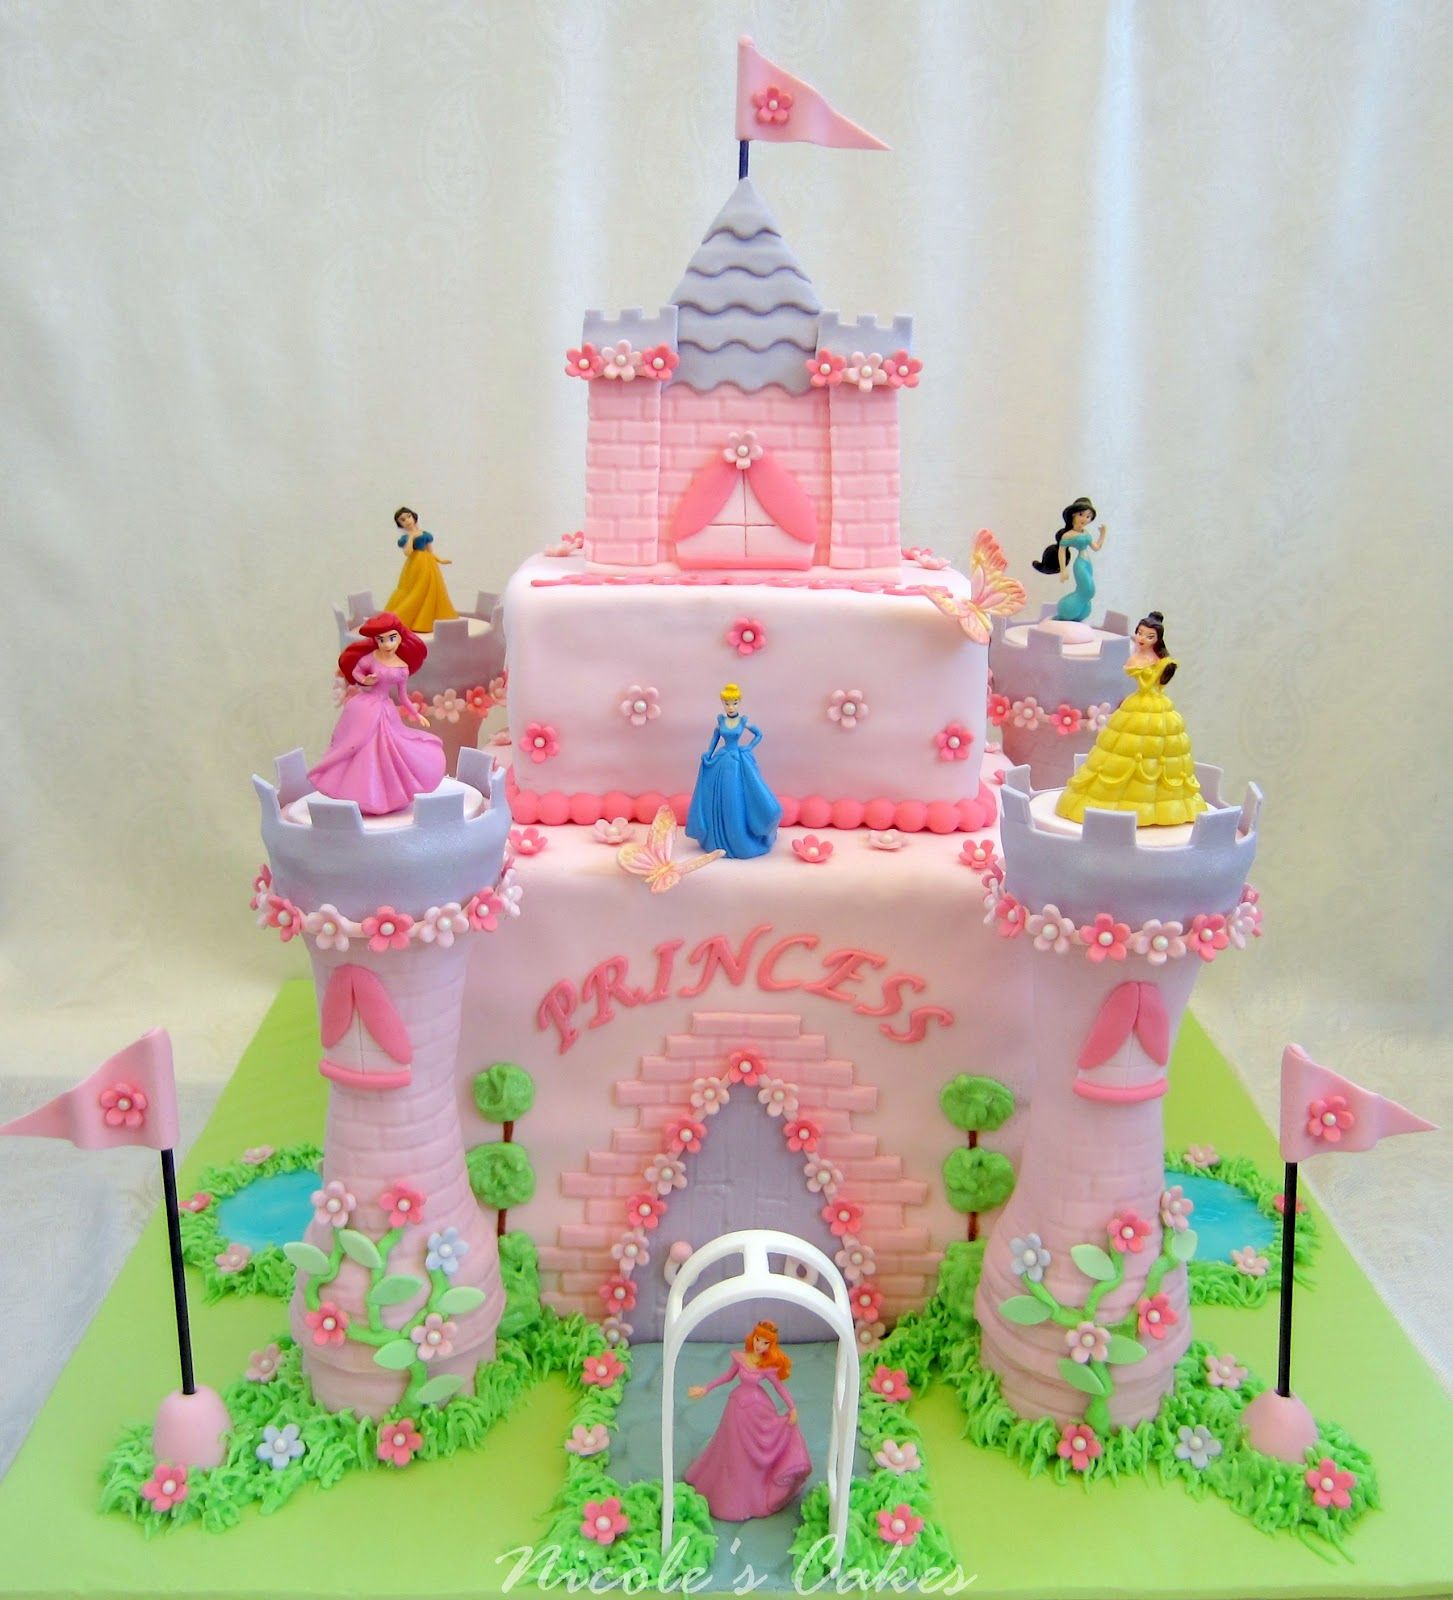 Disney Princess Cakes For Little Girls And The Little Toy - Cake birthday princess